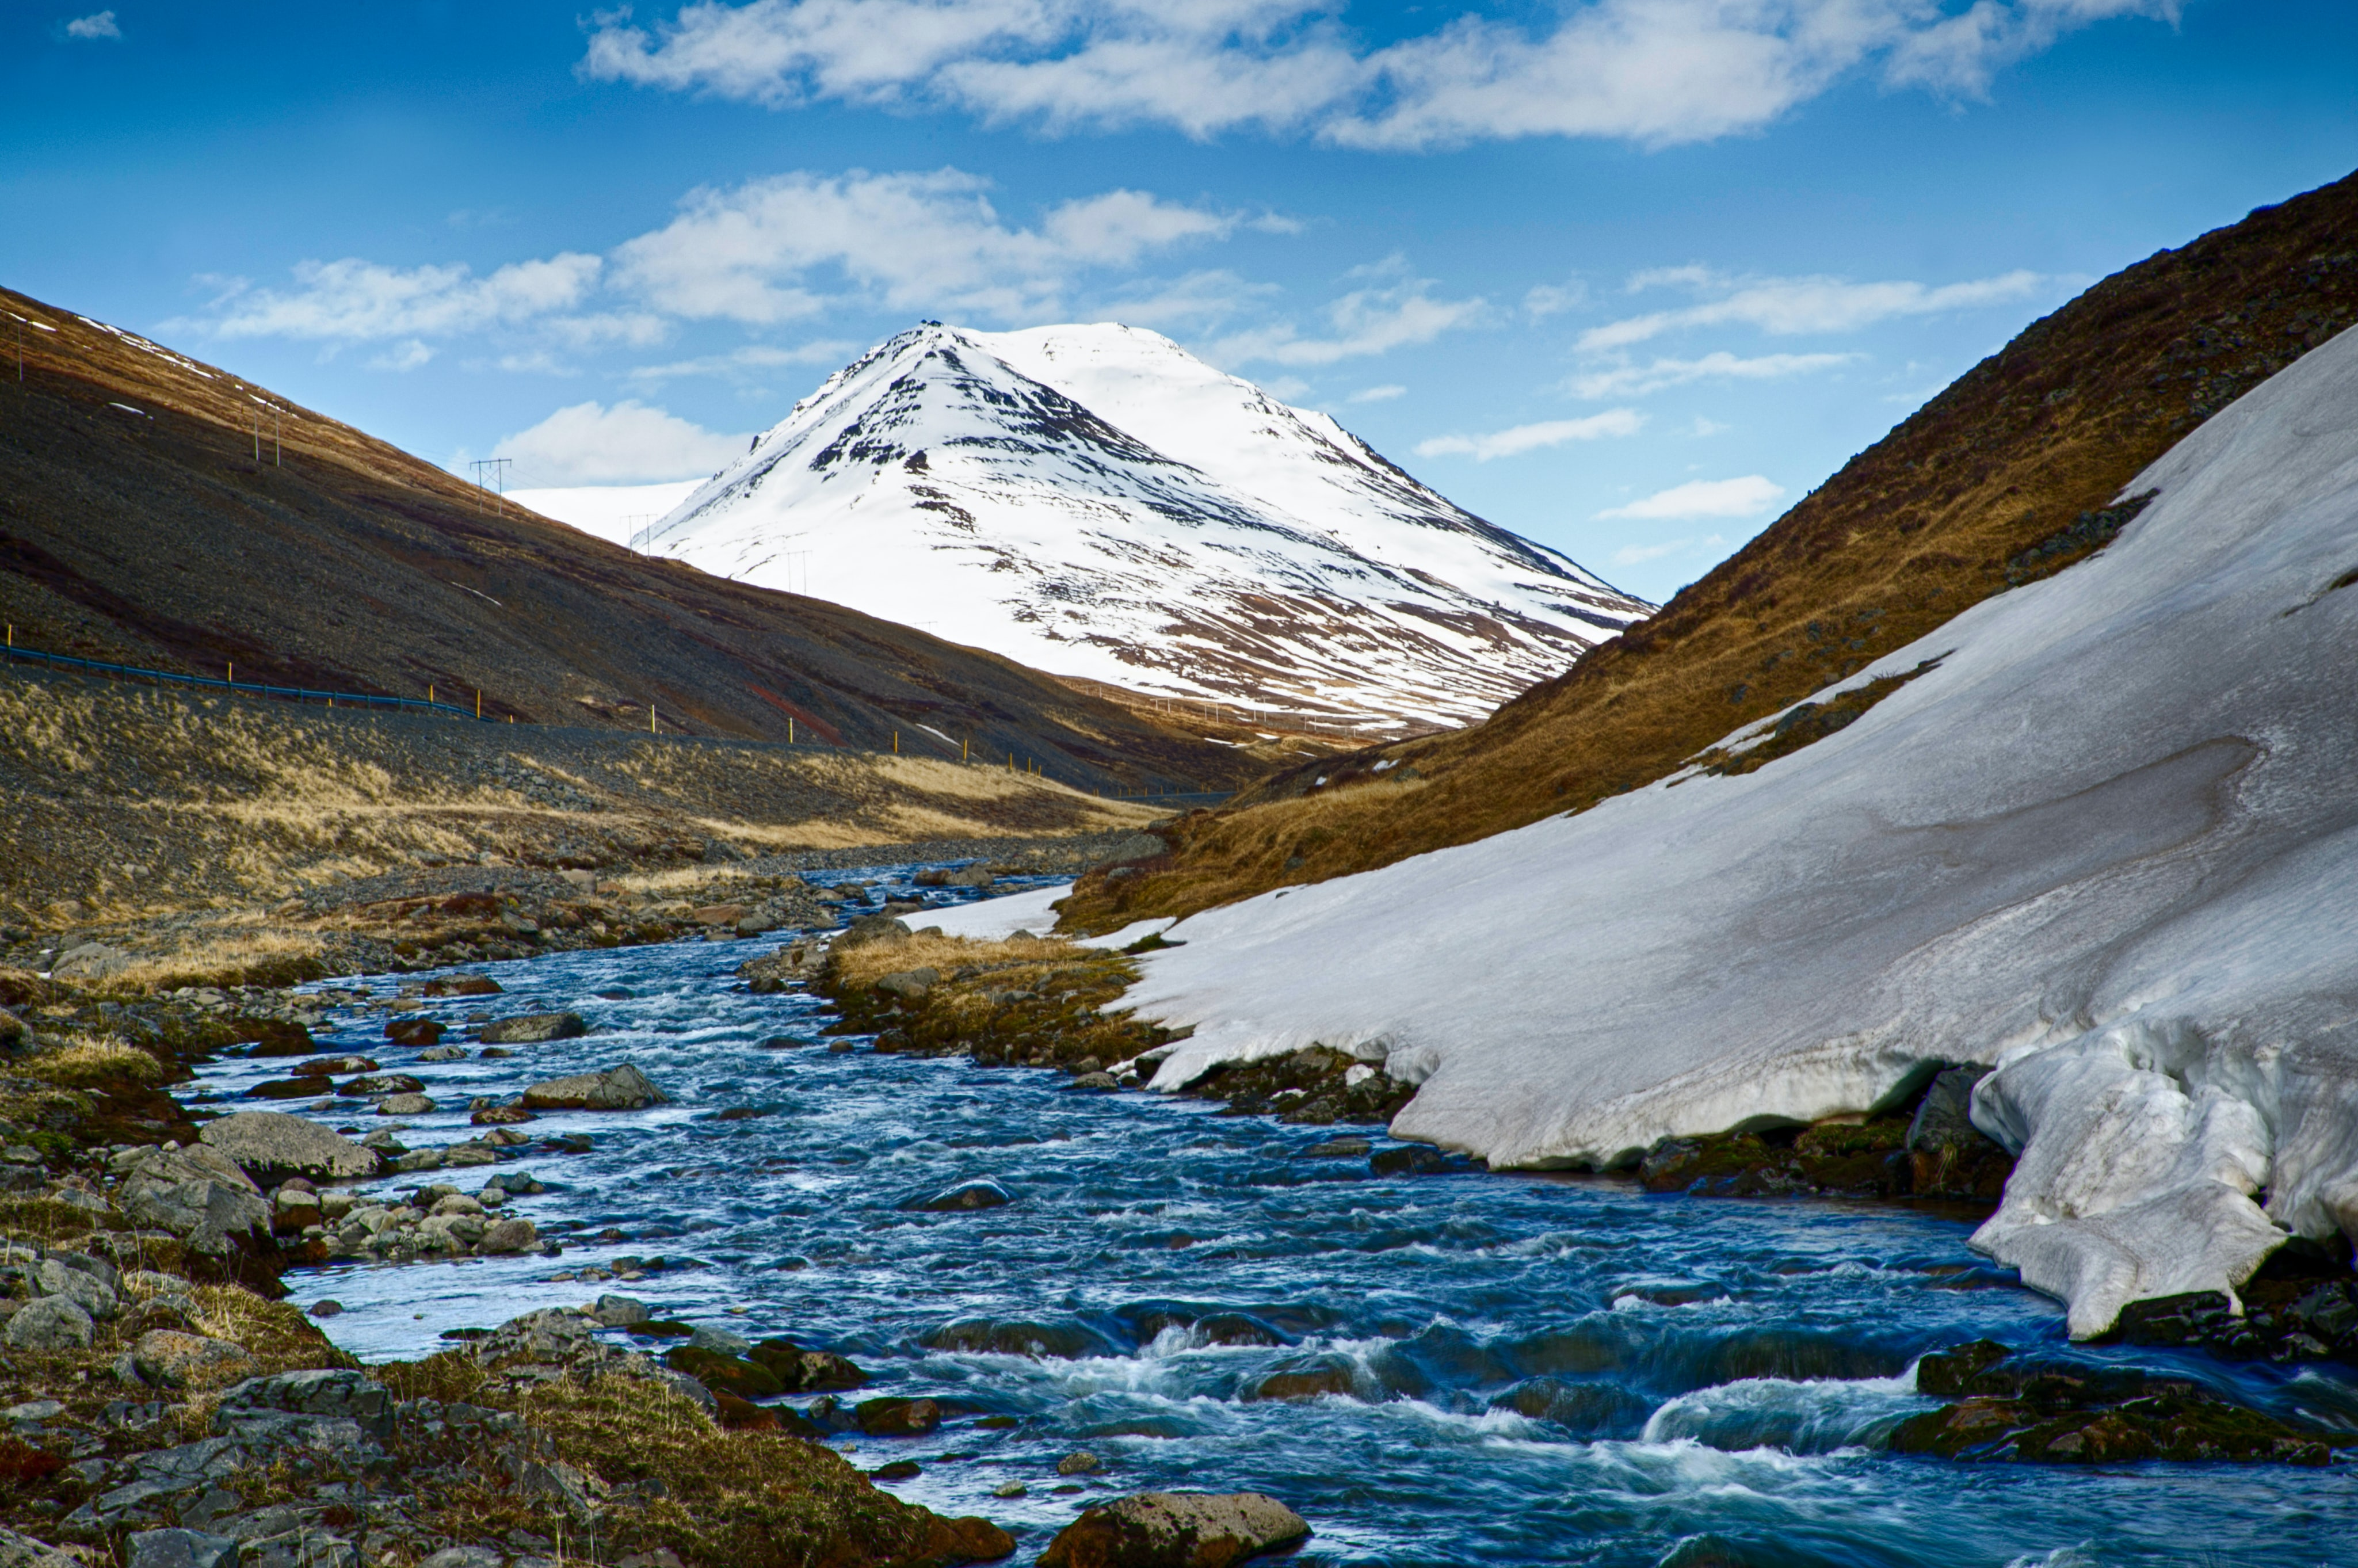 A river in a valley on Iceland is flowing in the direction of a snowy mountain